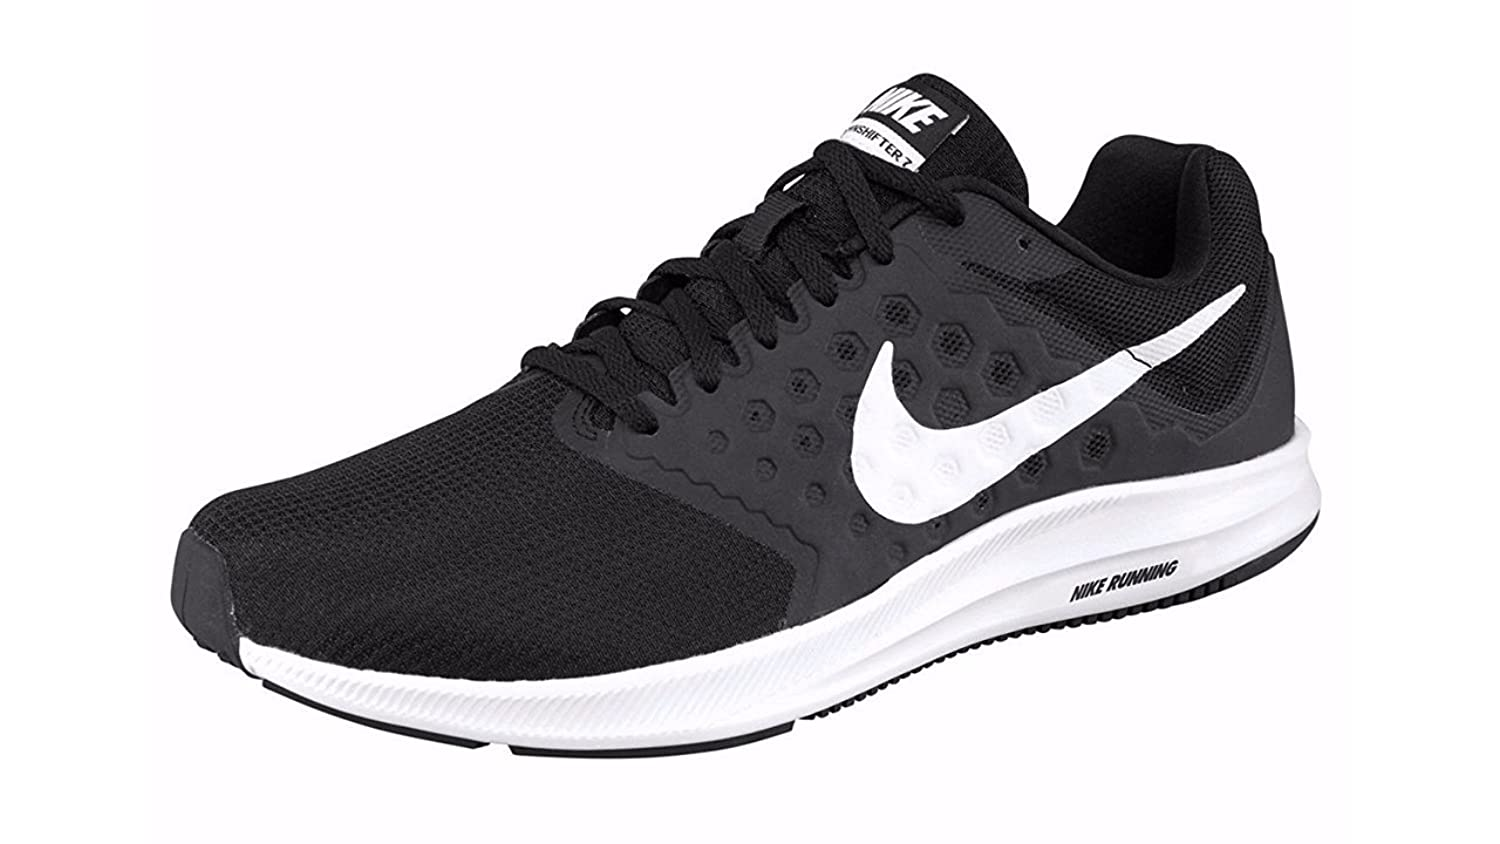 NIKE DOWNSHIFTER 7 SPORTS RUNNING SHOE